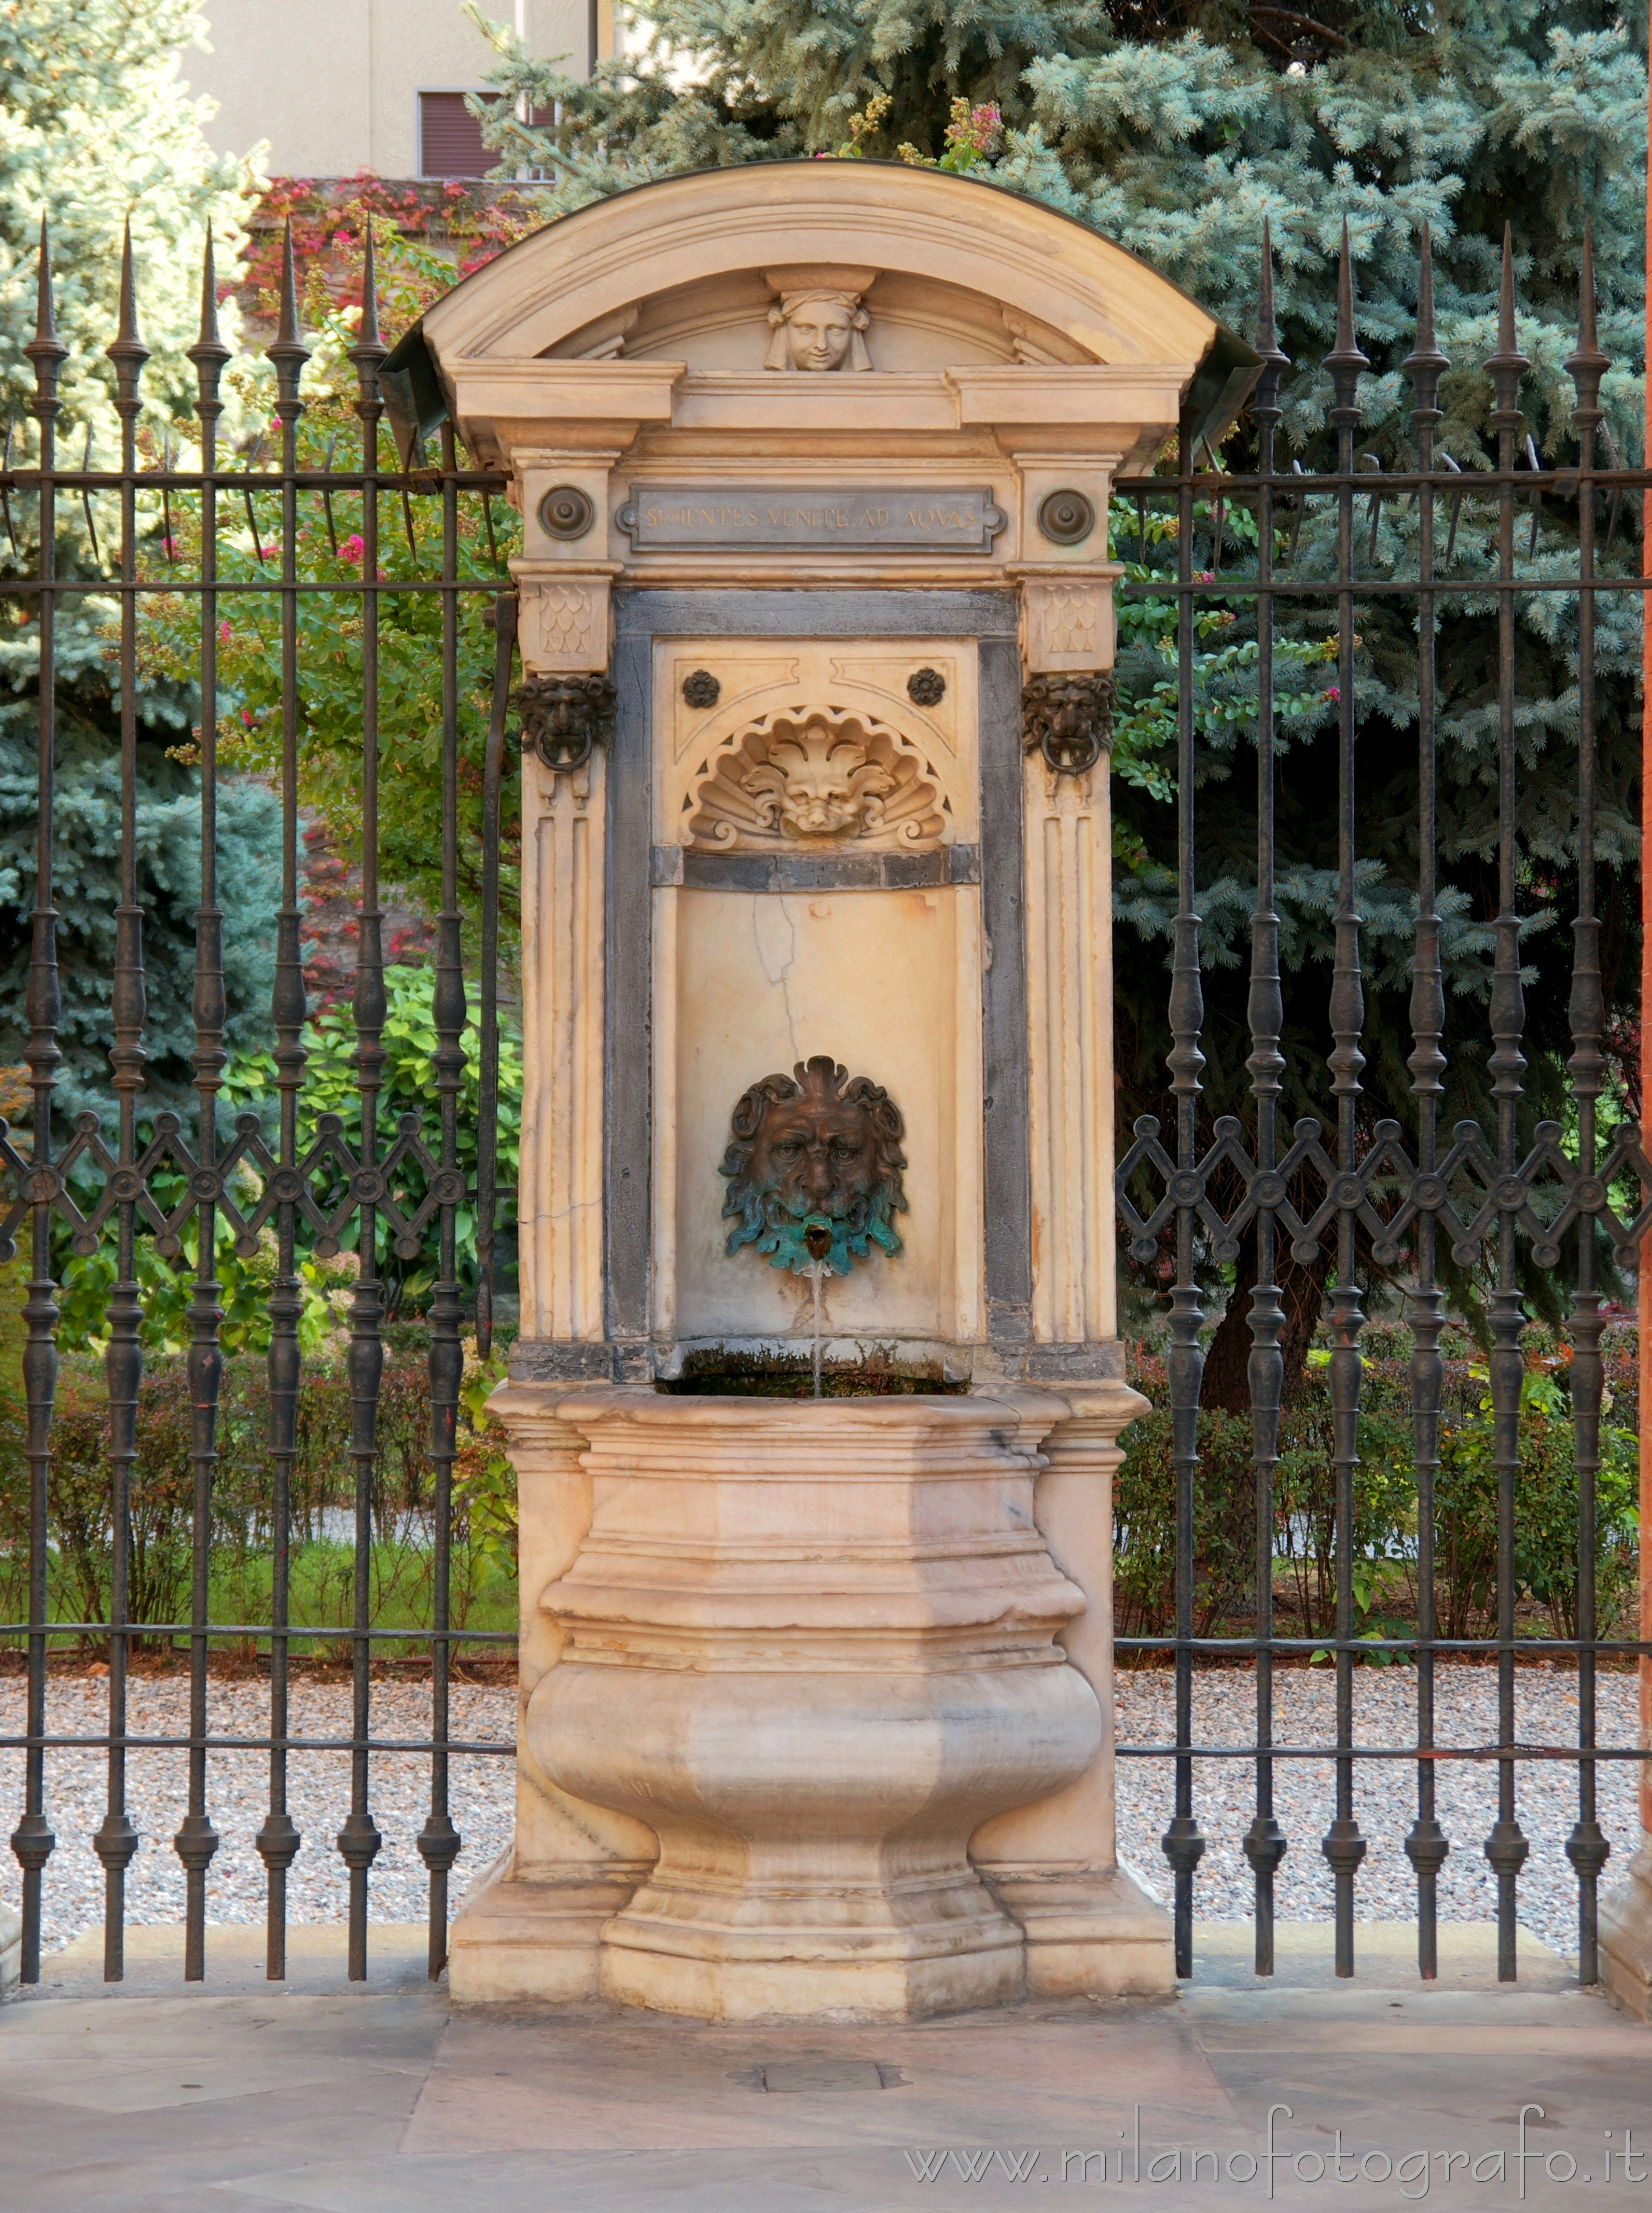 Milan (Italy): Fountain in the quadriporticus of the Church of Santa Maria dei Miracoli - Milan (Italy)